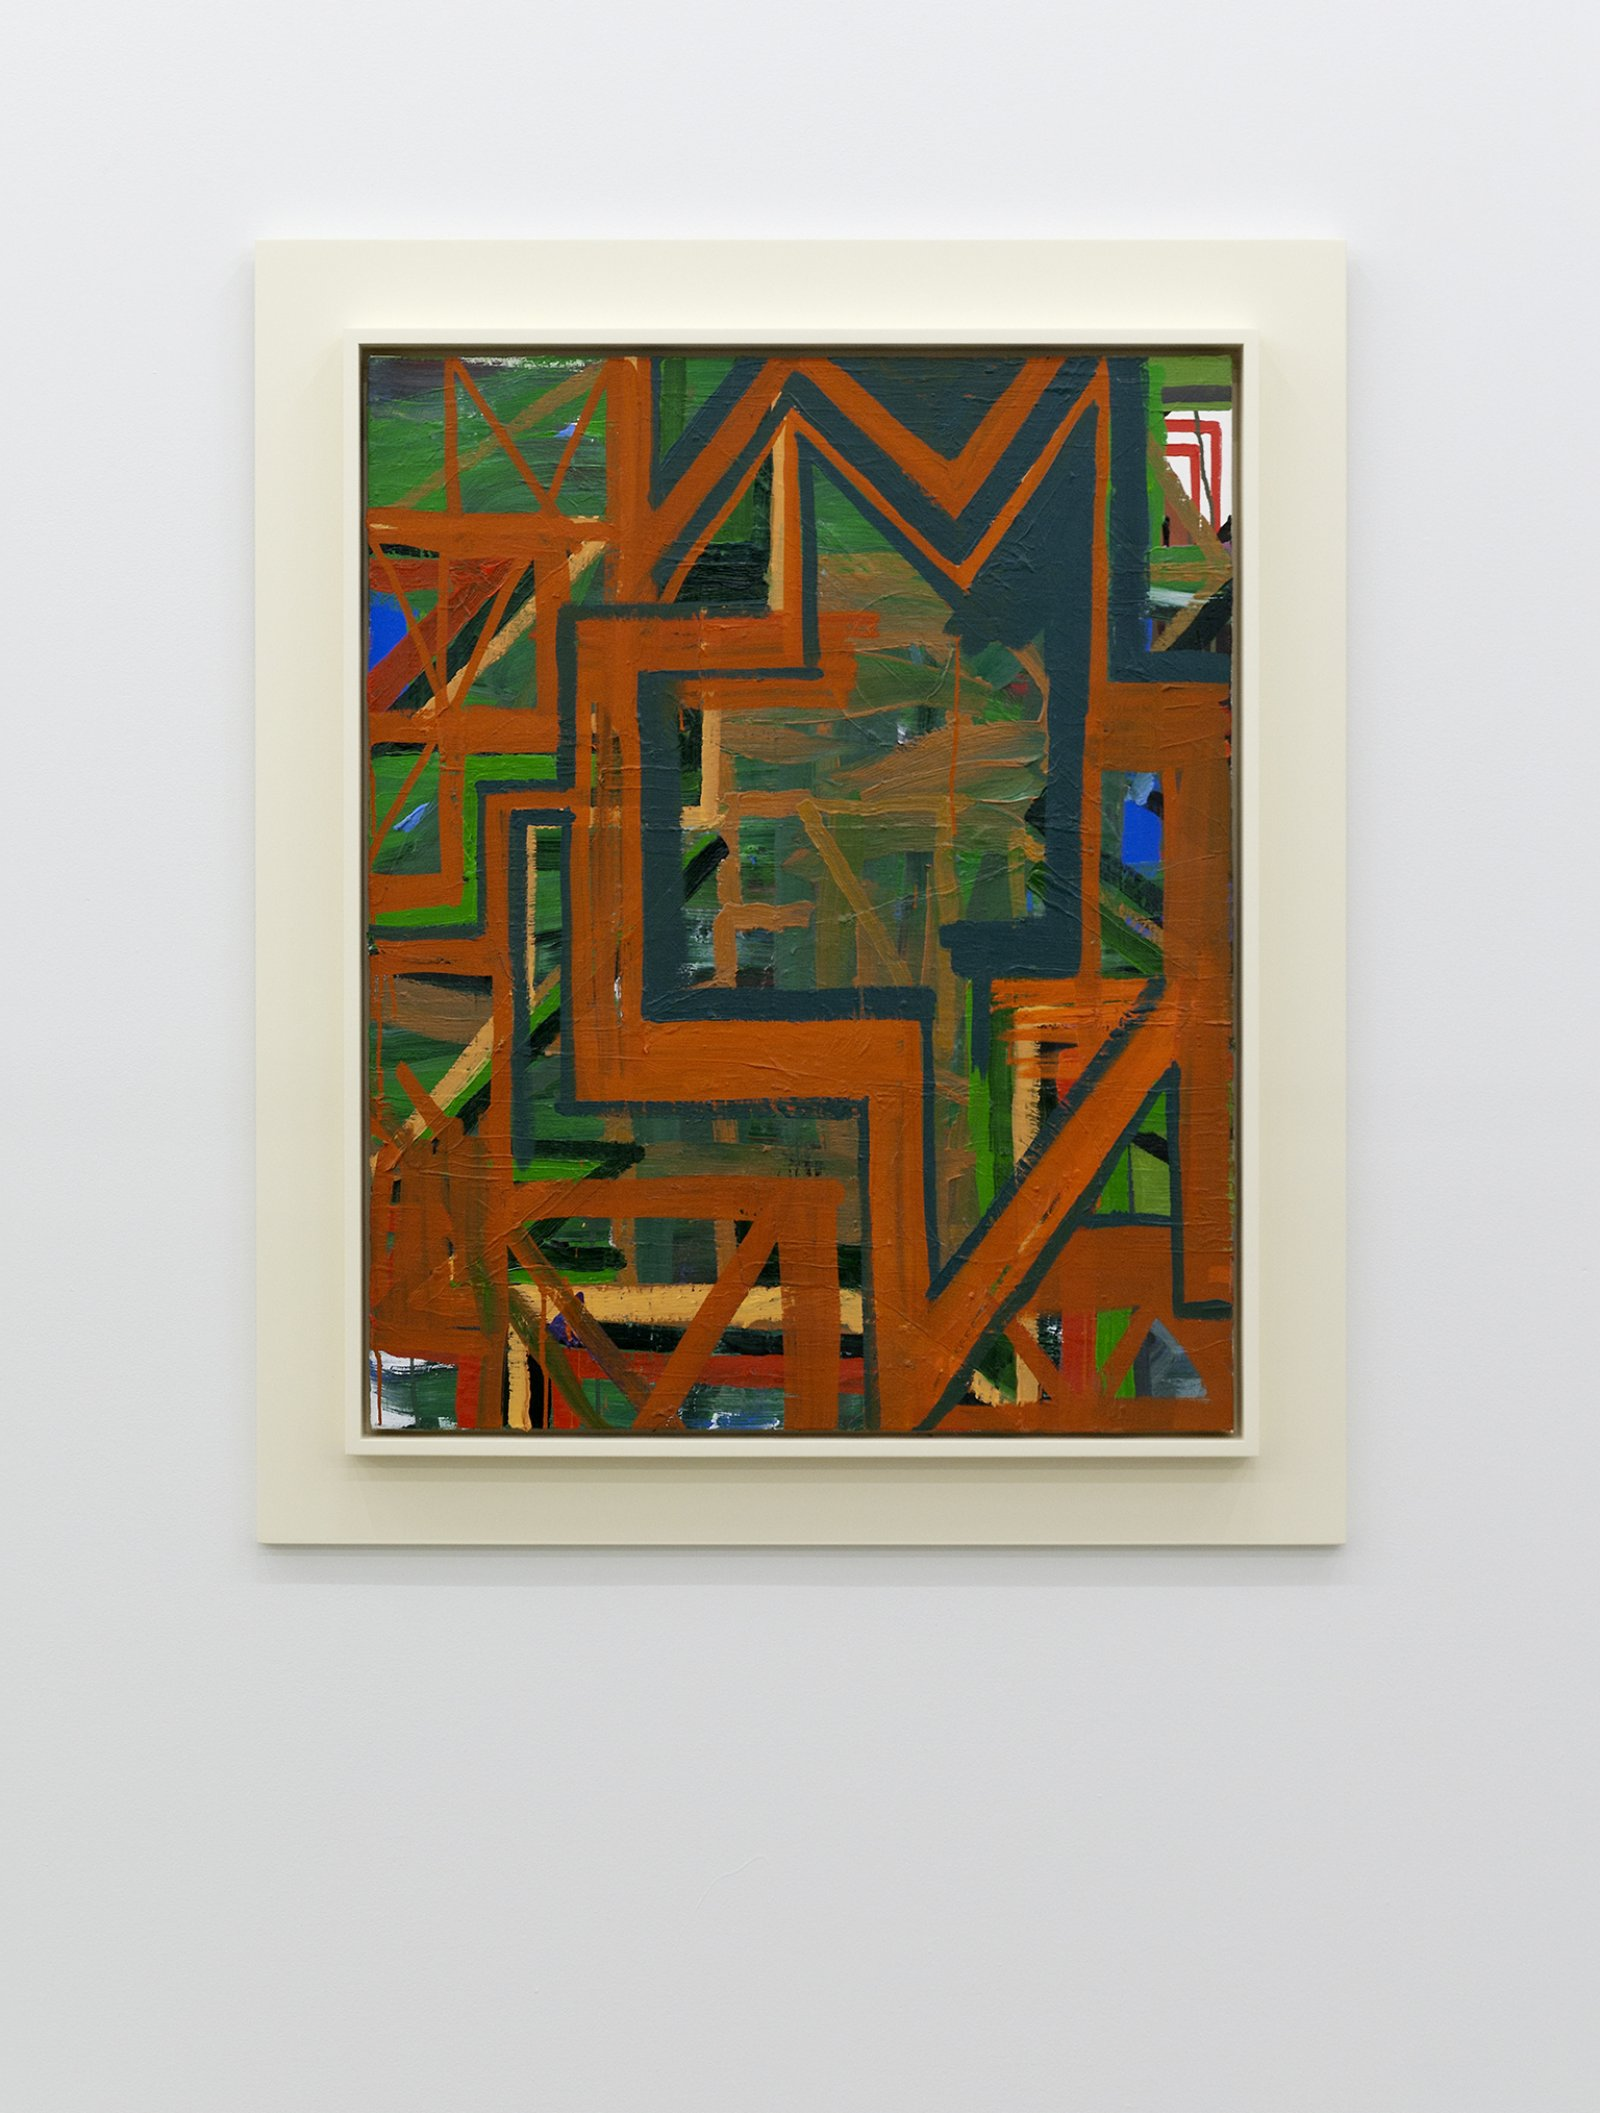 Damian Moppett, Untitled Green and Orange Abstraction, 2010, oil on canvas and wood frame, 42 x 36 in. (107 x 91 cm) by Damian Moppett